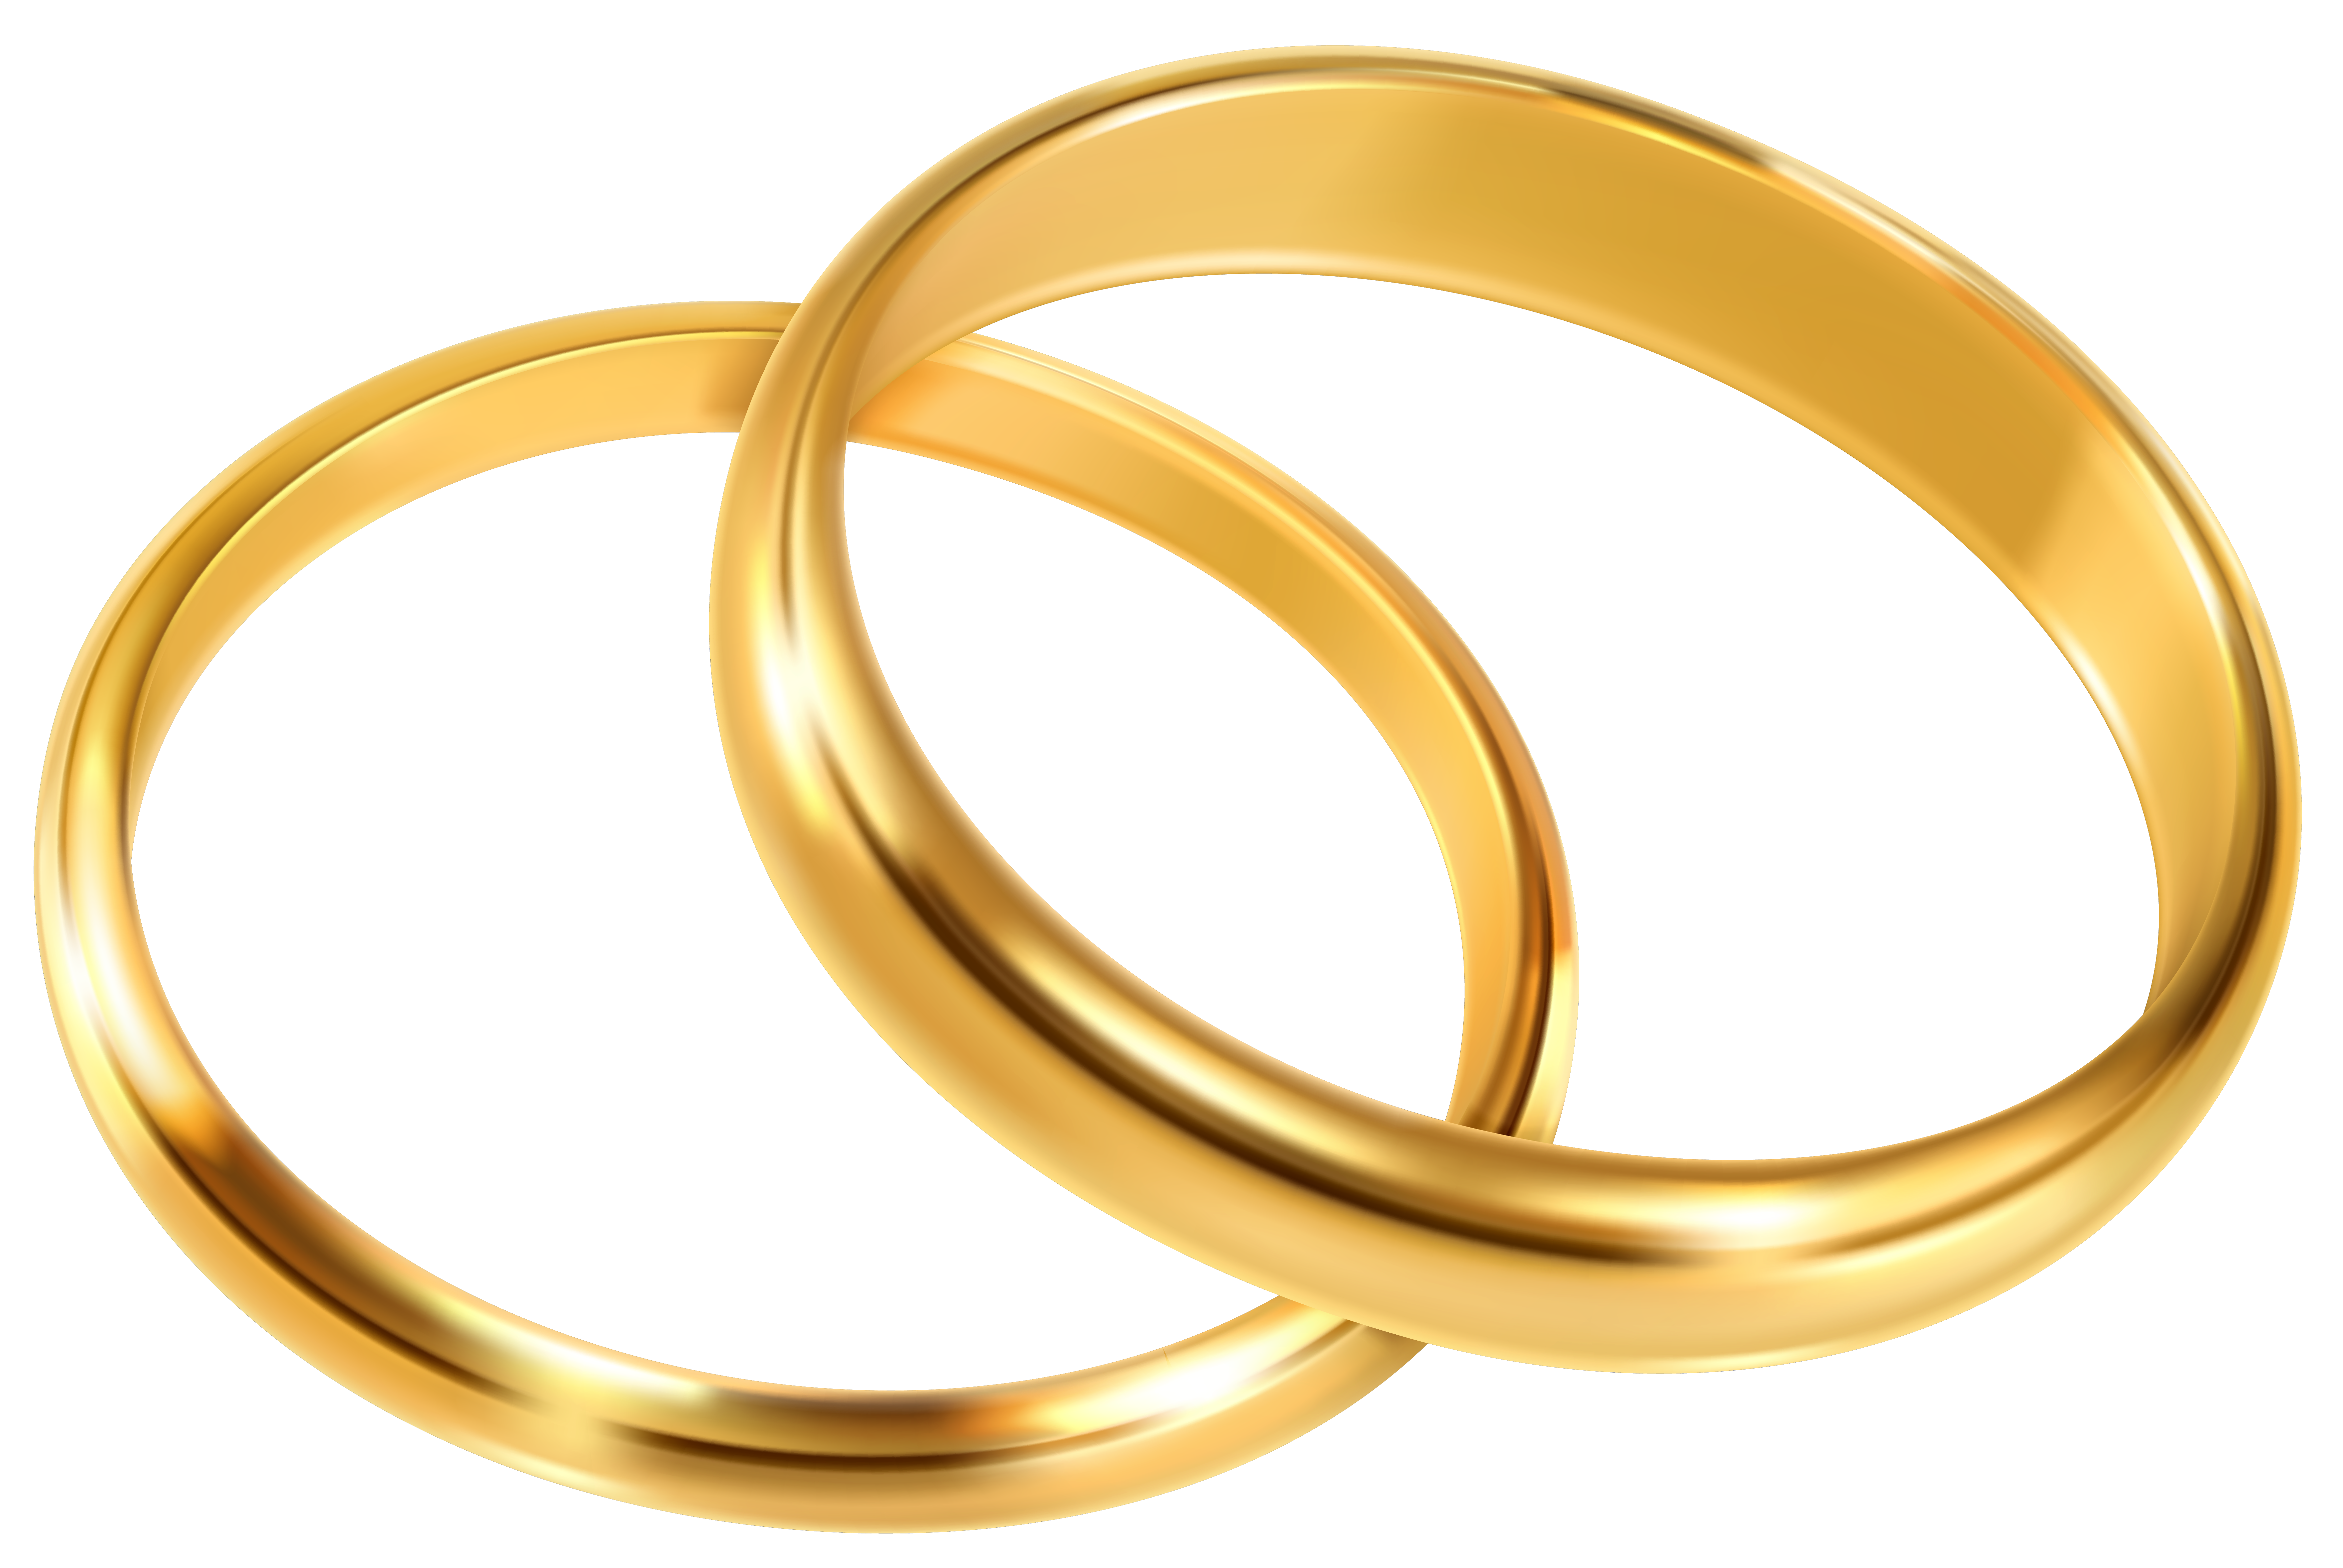 clip art library Rings png clip art. Marriage clipart wedding band.